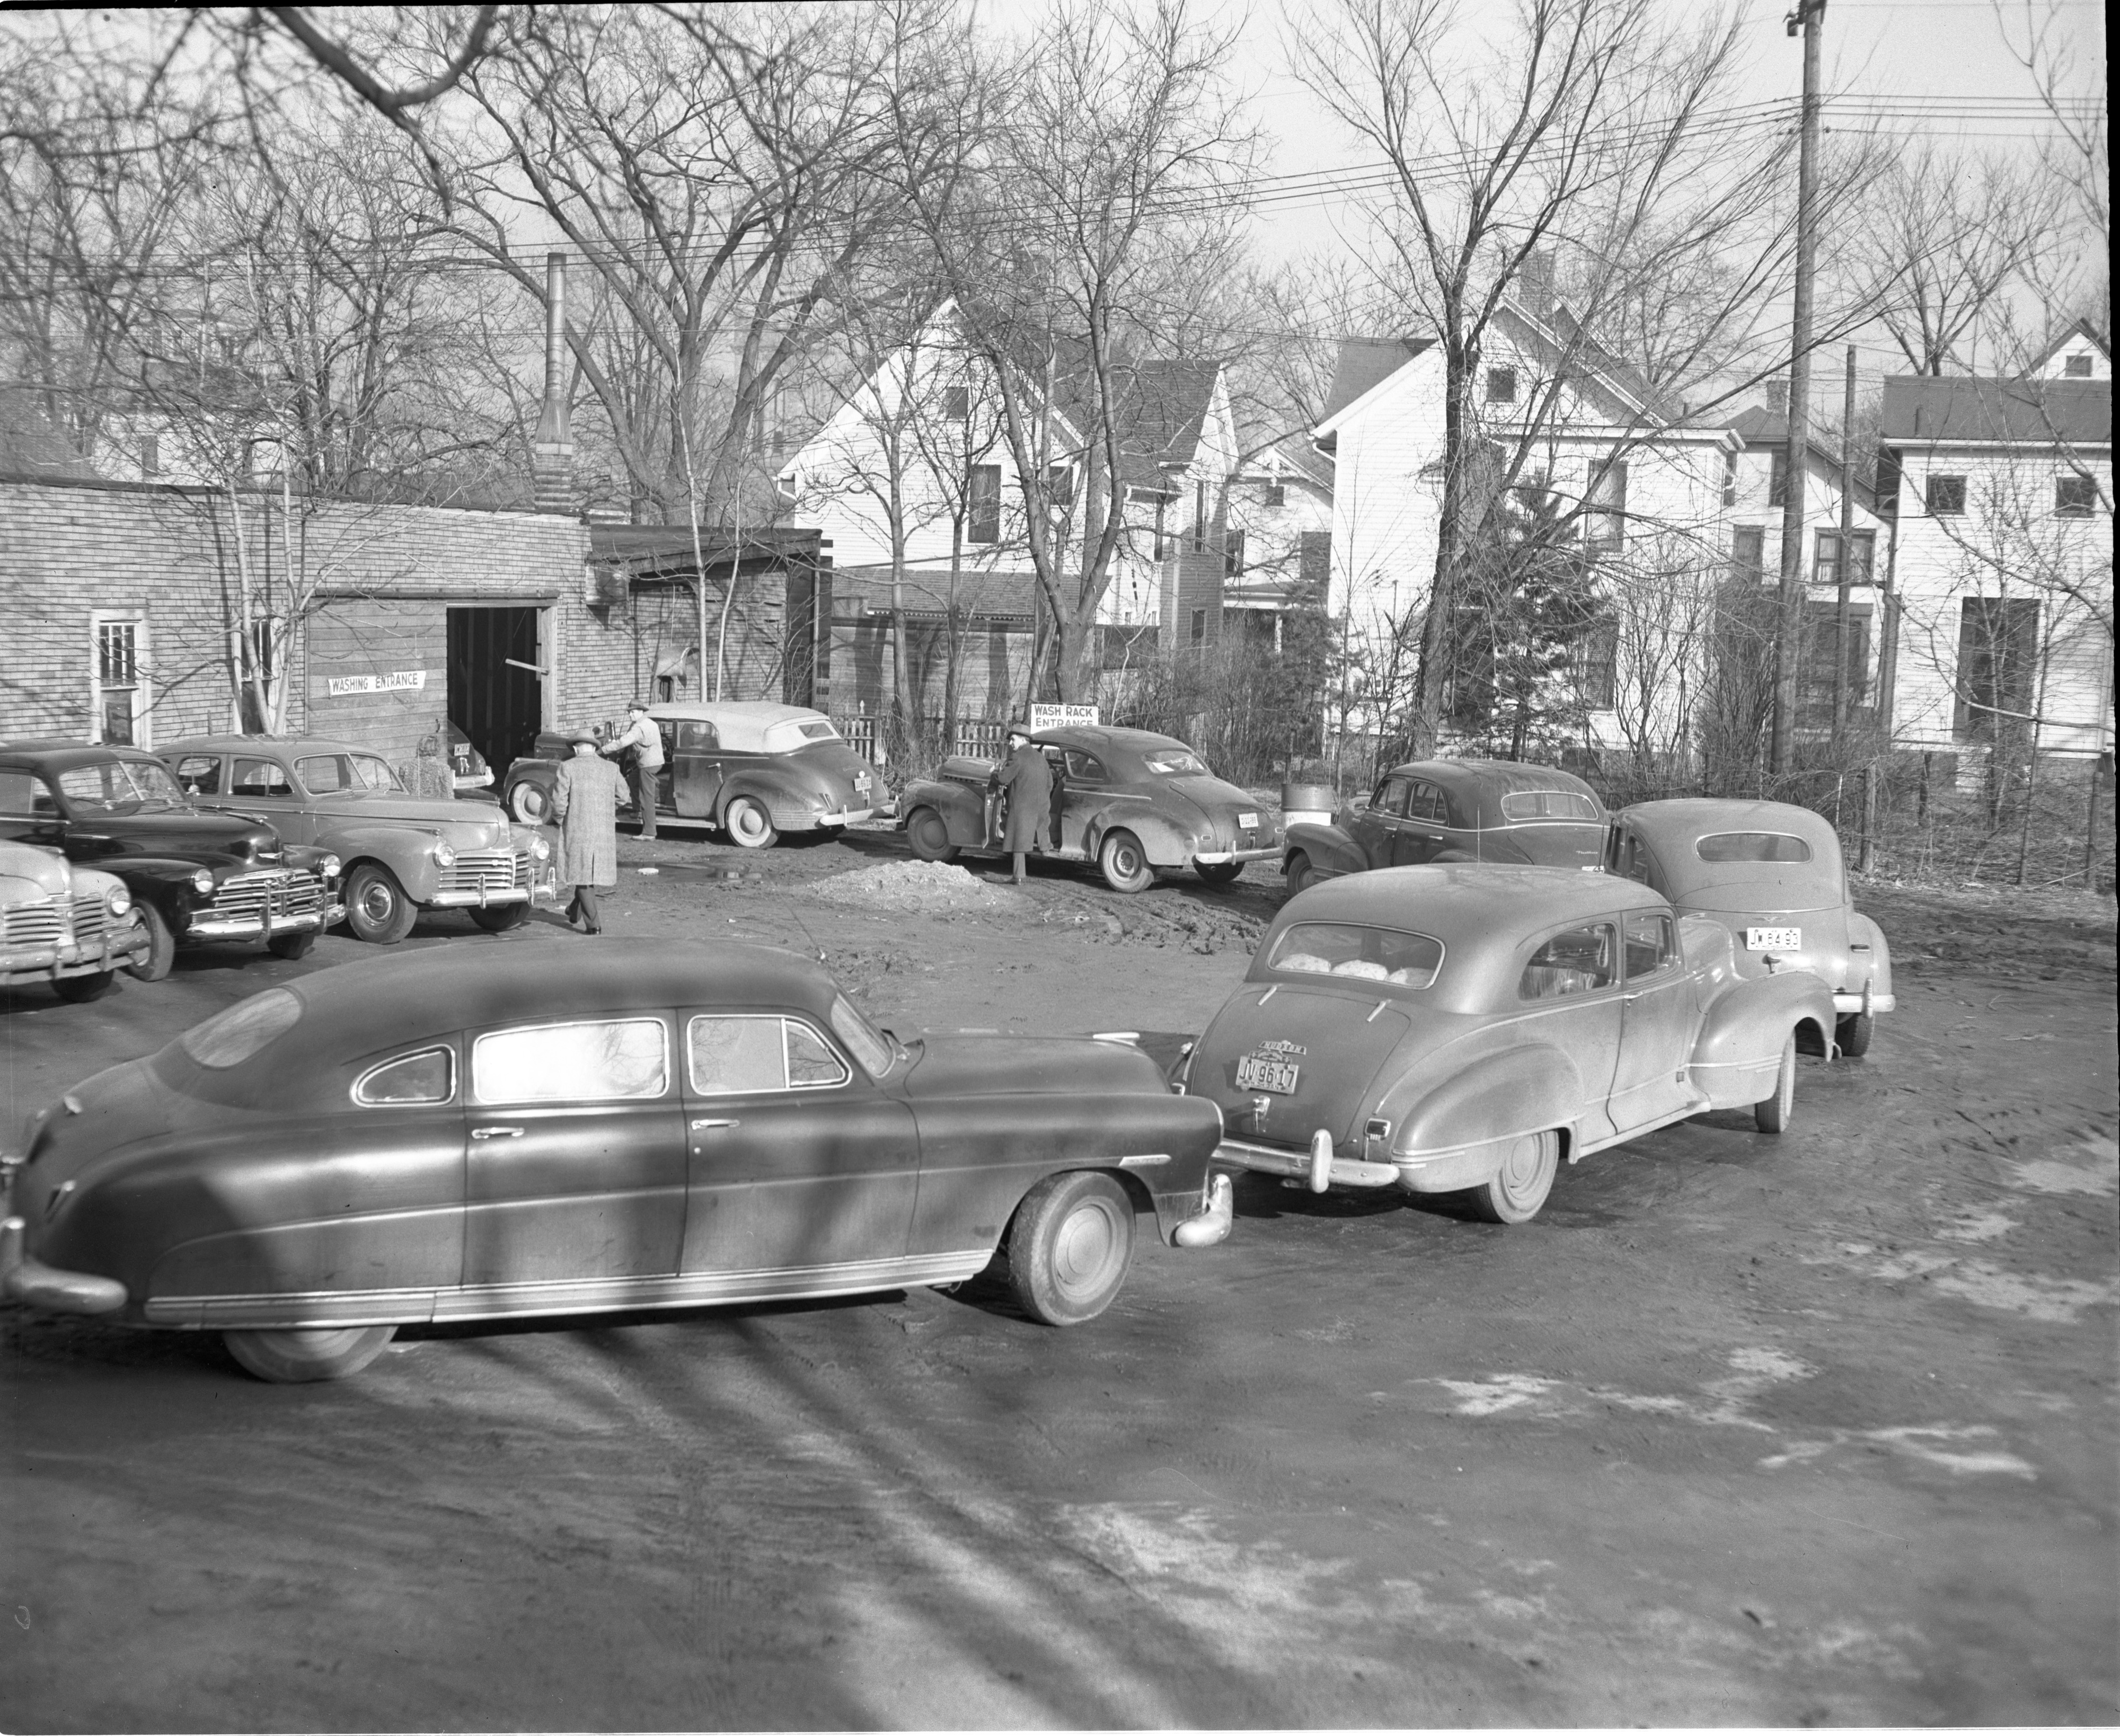 Cars Wait In Line Outside Speede Auto Wash, February 1949 image